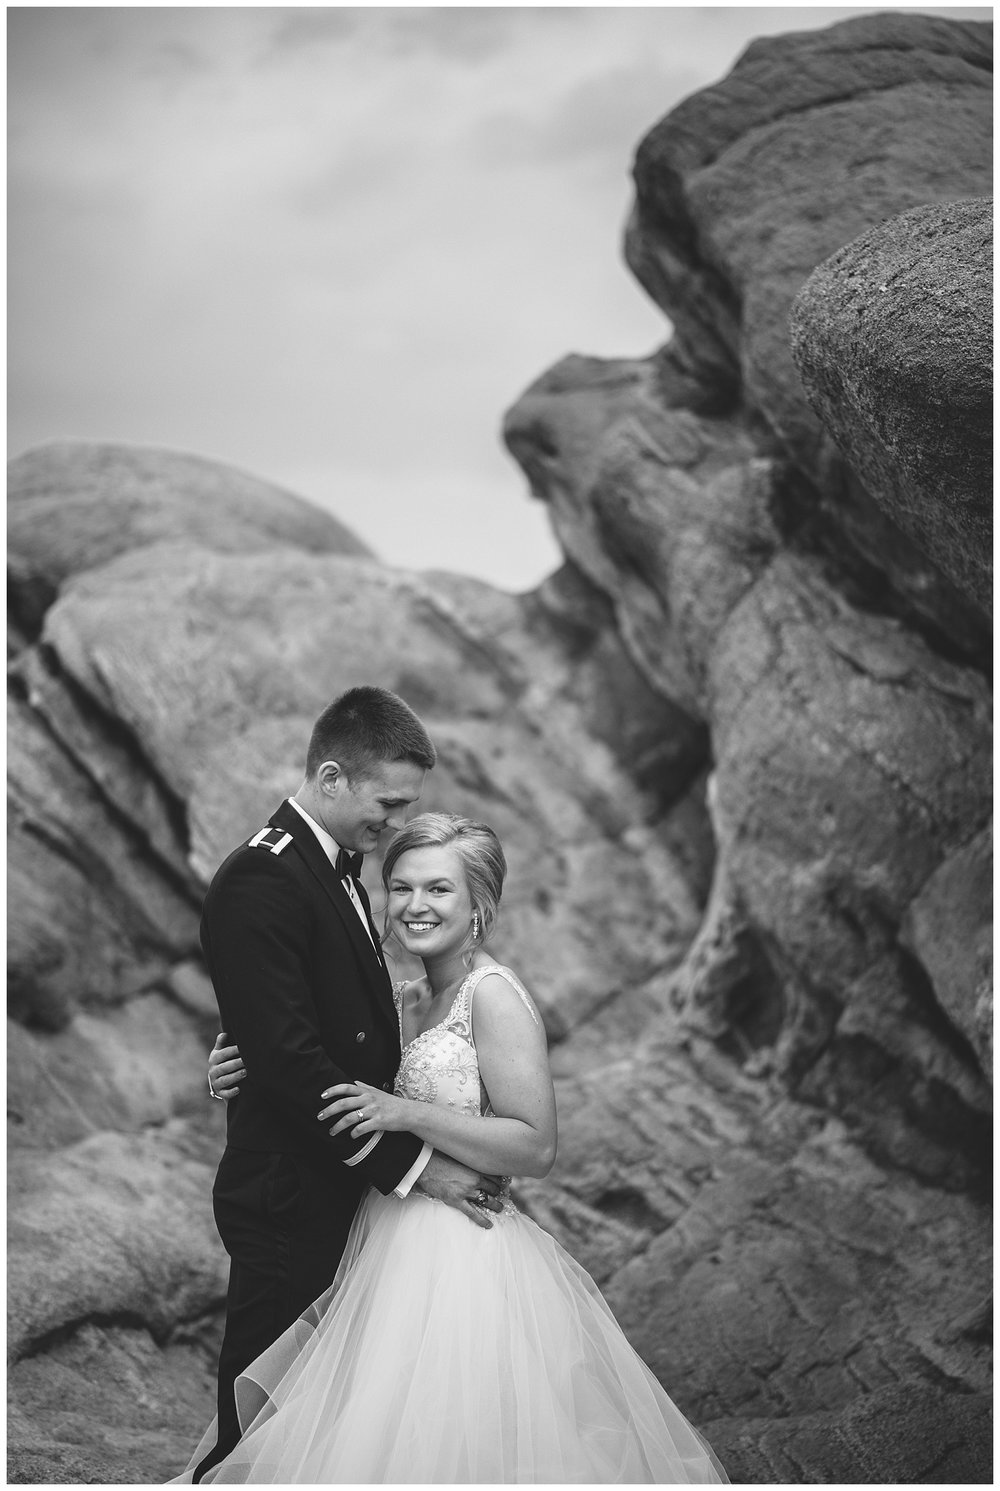 Military Wedding, bride and groom, navy suit groom, dress blues groom, bridal party, romantic portraits at garden of the gods, bride and groom at garden of the gods, Colorado Wedding Photographer, Denver Wedding Photographer, Denver Elopement Photographer, Colorado Elopement Photographer, Rocky Mountain Wedding Photographer, Downtown Denver Photographer,